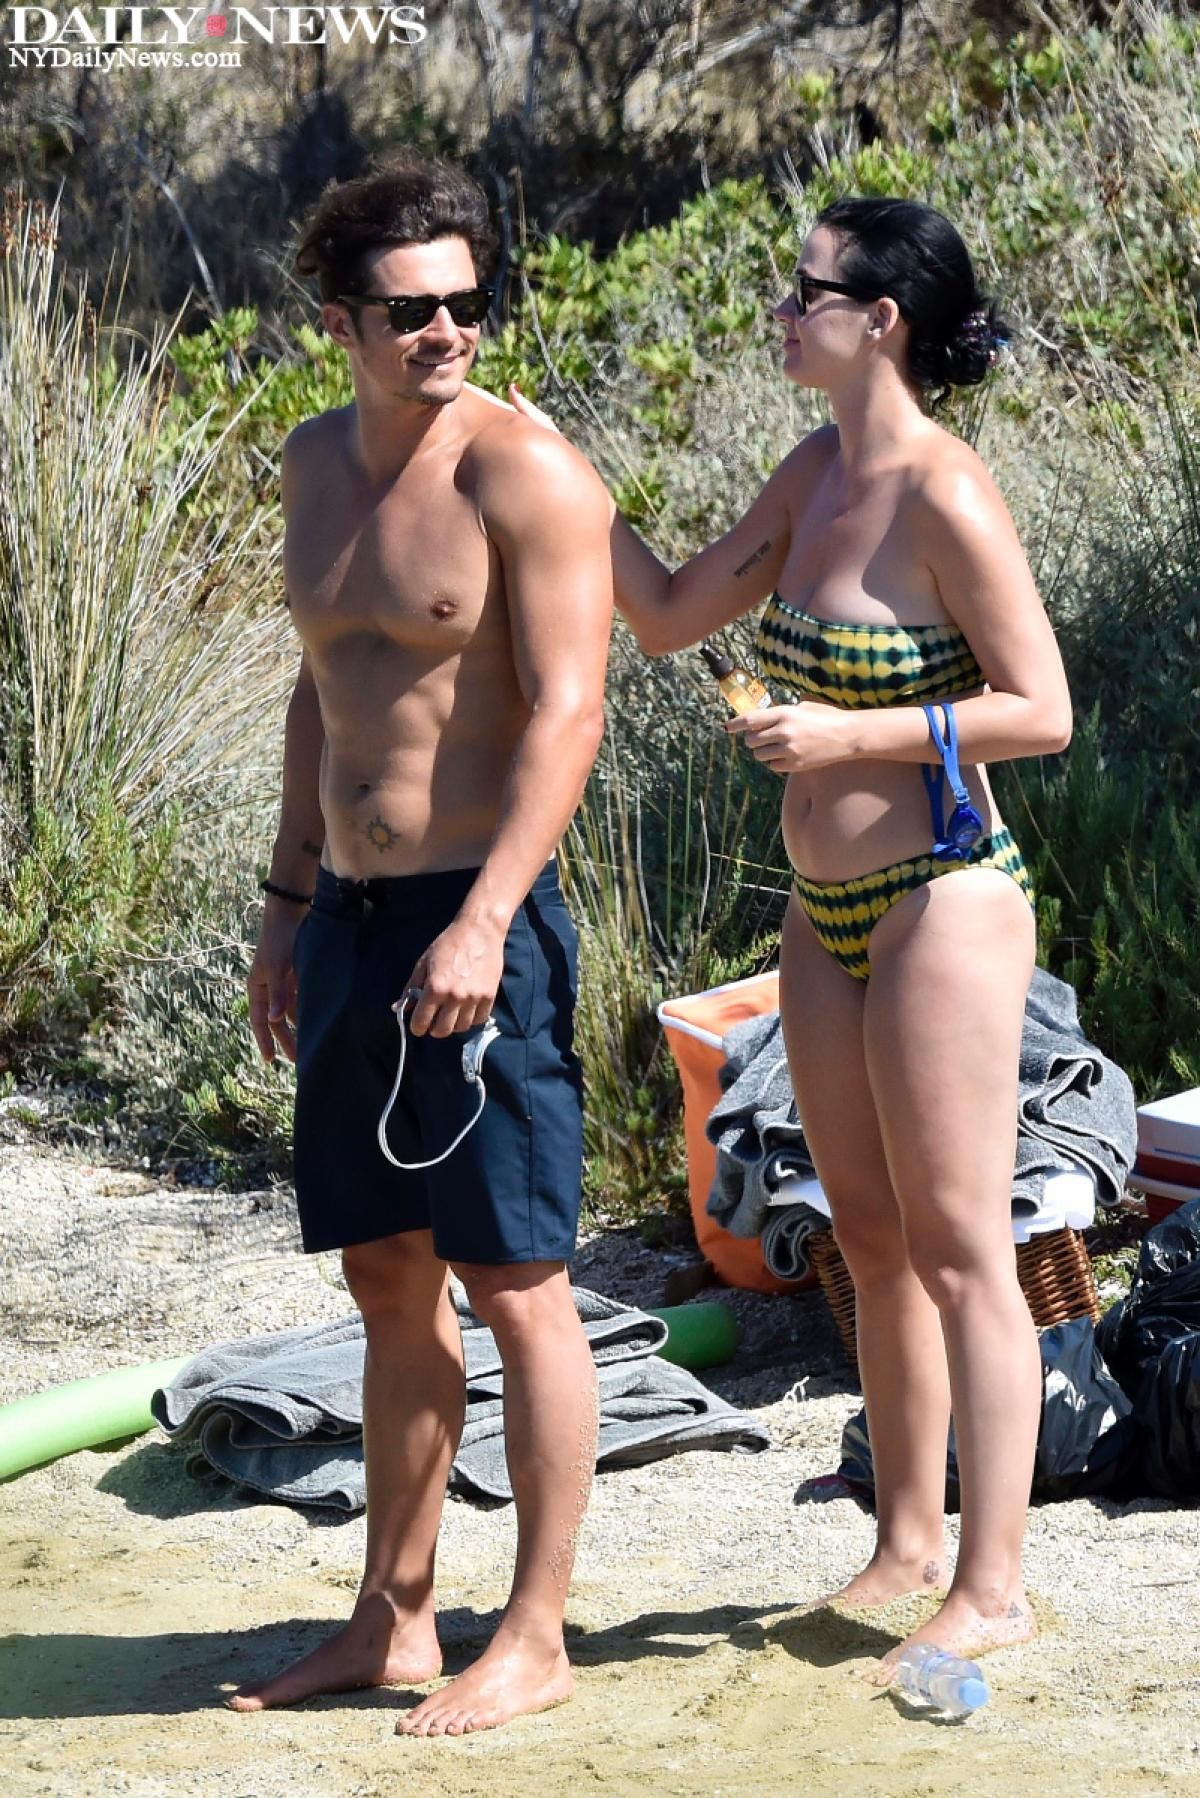 Katy Perry Lathered Sunscreen On Orlando Bloom Before Heading Into The Water For Some Fun In The Sun I Katy Perry Bikini Katy Perry Body Cute Celebrity Couples